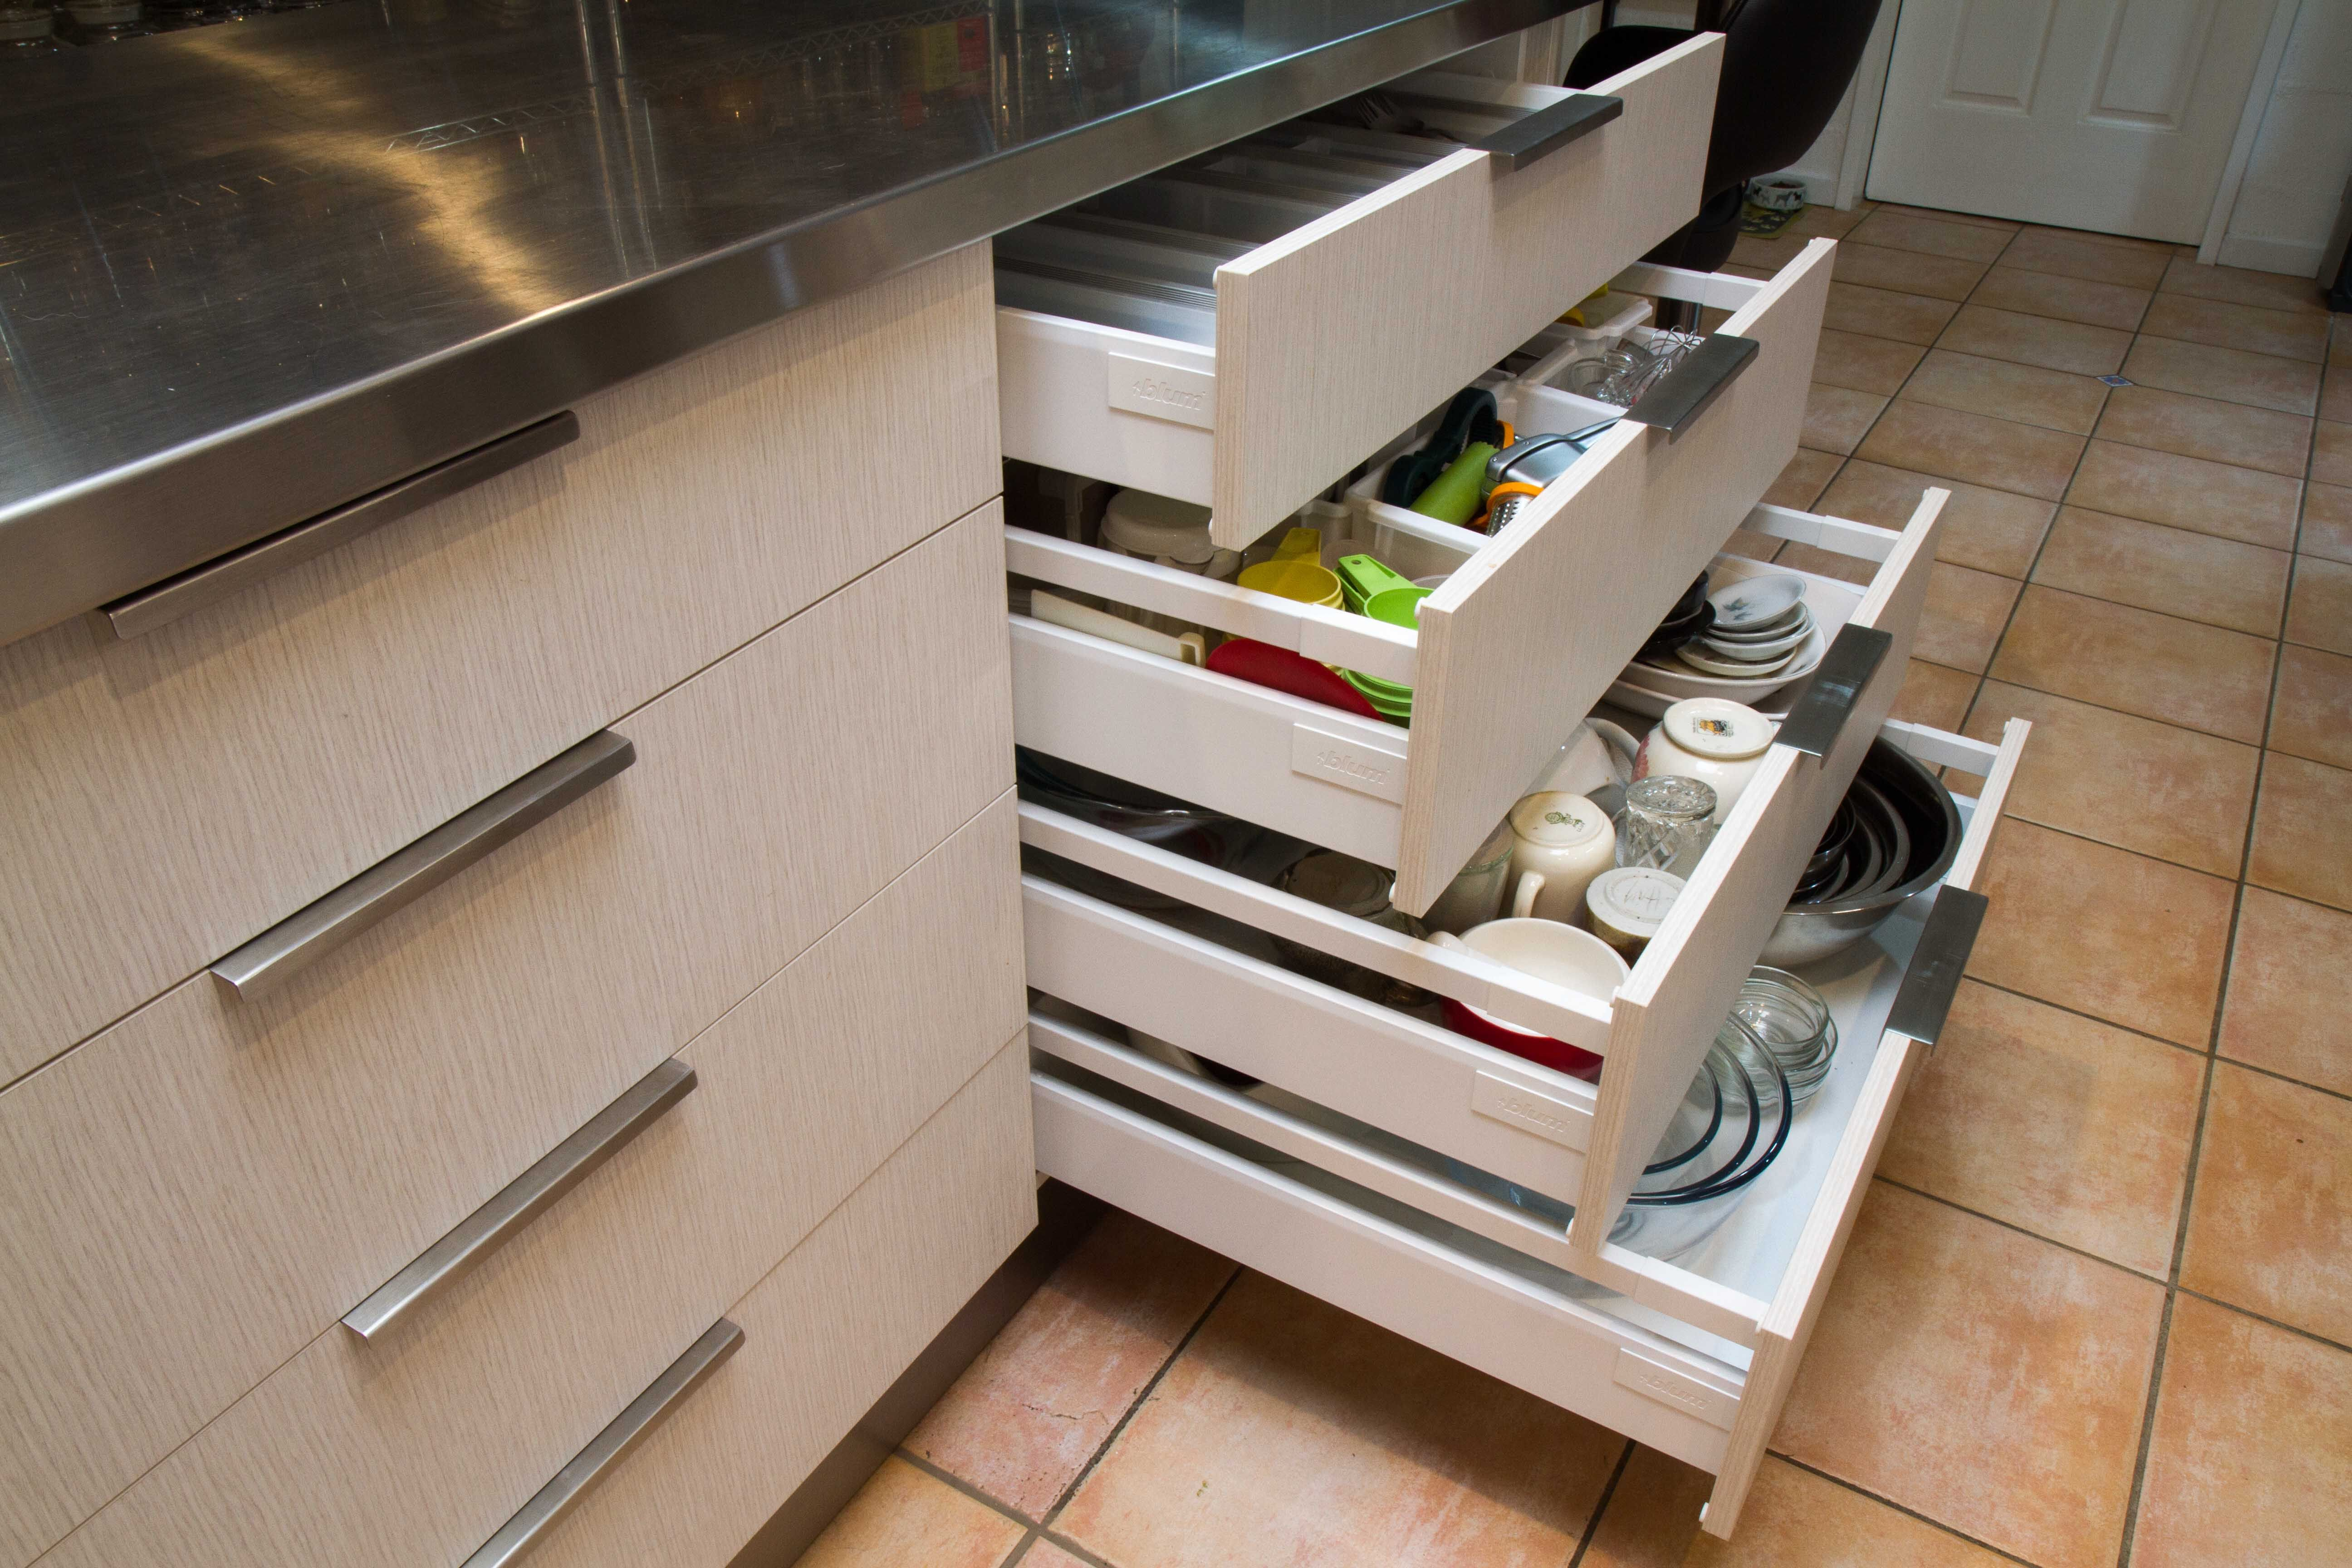 Semi Industrial Kitchen 4 Drawers For Maximum Storage 50kg Weight Capacity Per Drawer Means This Area Can Hold 200kg Kitchen Cabinets Kitchen Drawers Drawers